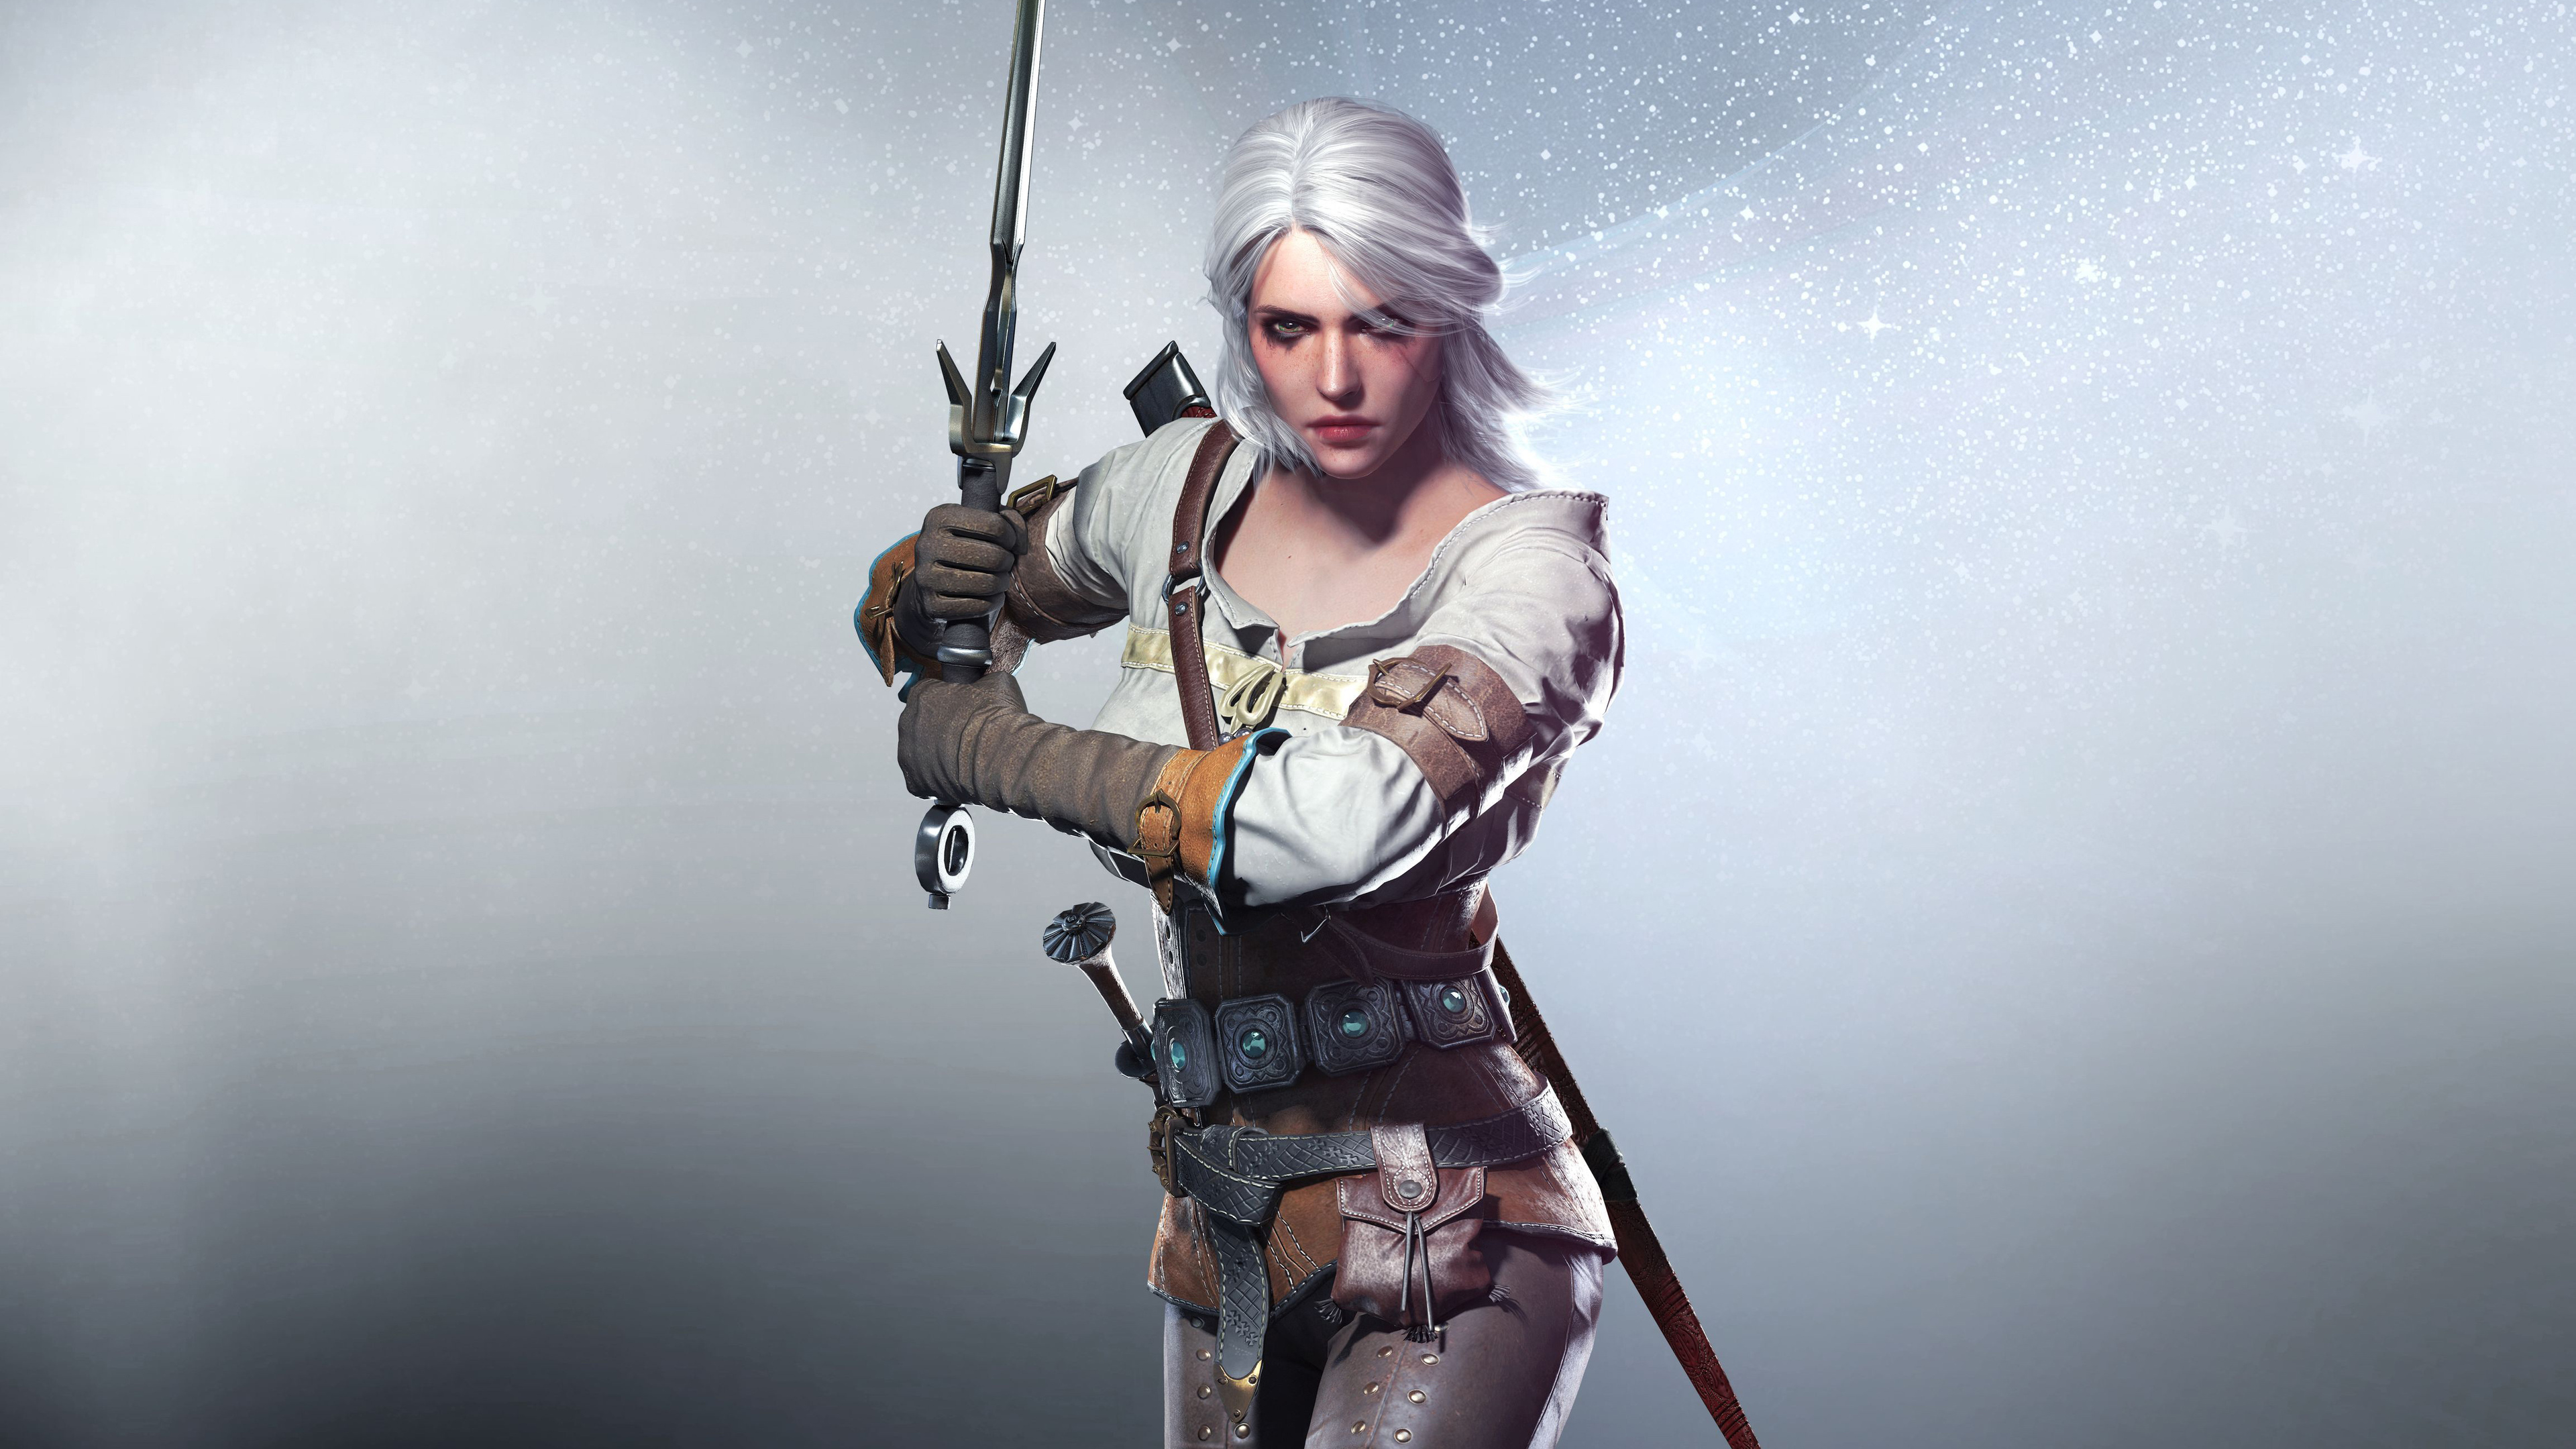 ciri 4k 1545589705 - Ciri 4k - xbox games wallpapers, the witcher 3 wallpapers, ps4 games wallpapers, pc games wallpapers, hd-wallpapers, games wallpapers, fantasy girls wallpapers, ciri wallpapers, 5k wallpapers, 4k-wallpapers